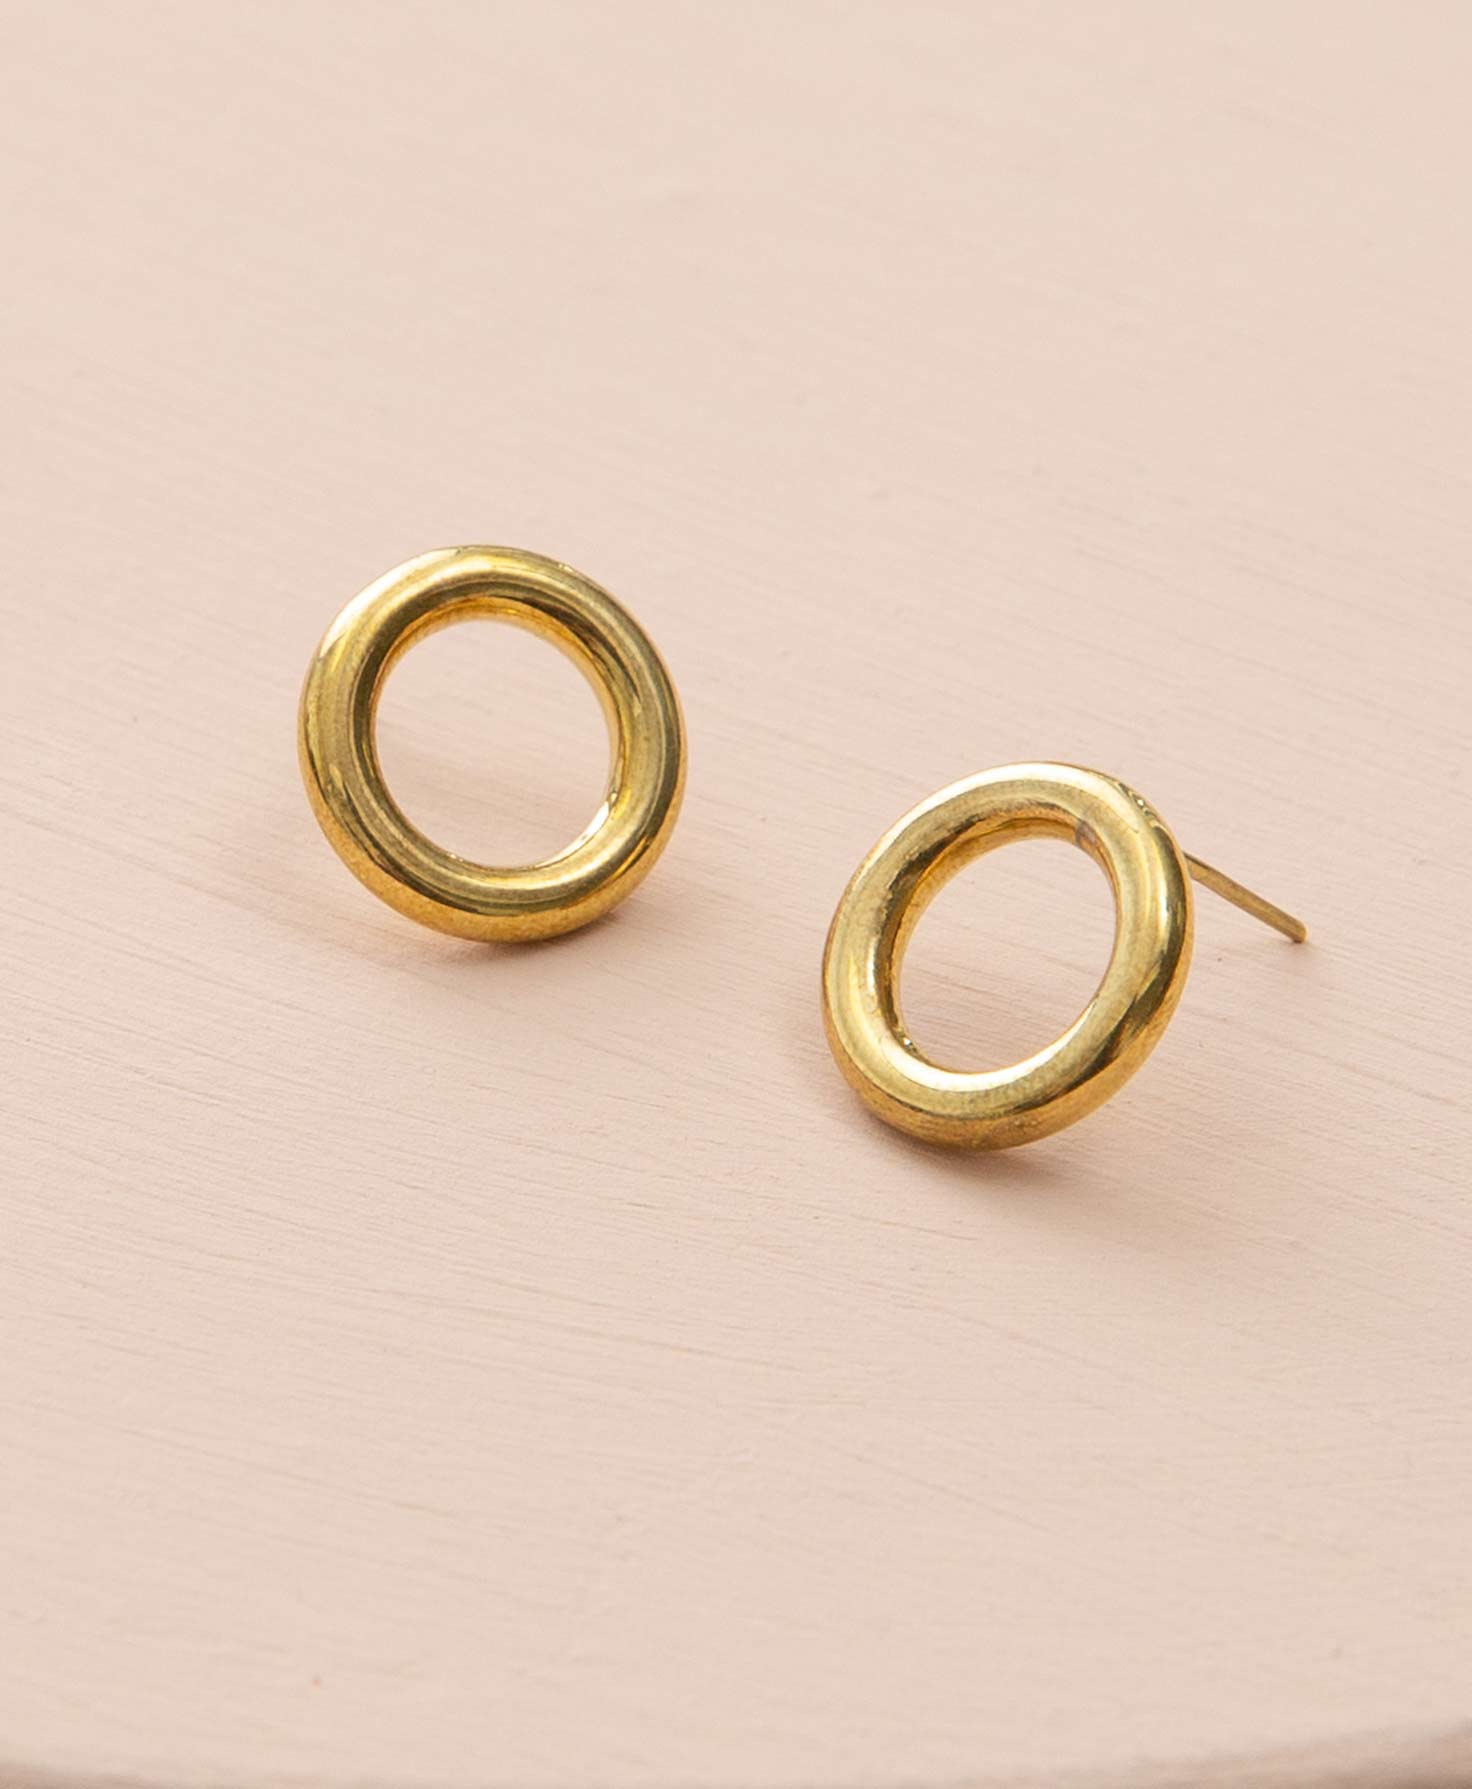 The Revolve Earrings sit propped up on a blush-colored platform. They are stud-style earrings made of shining gold plated brass. A brass tube wraps around to form a perfect circle that is open in the middle. The earrings resemble dainty gold doughnuts.